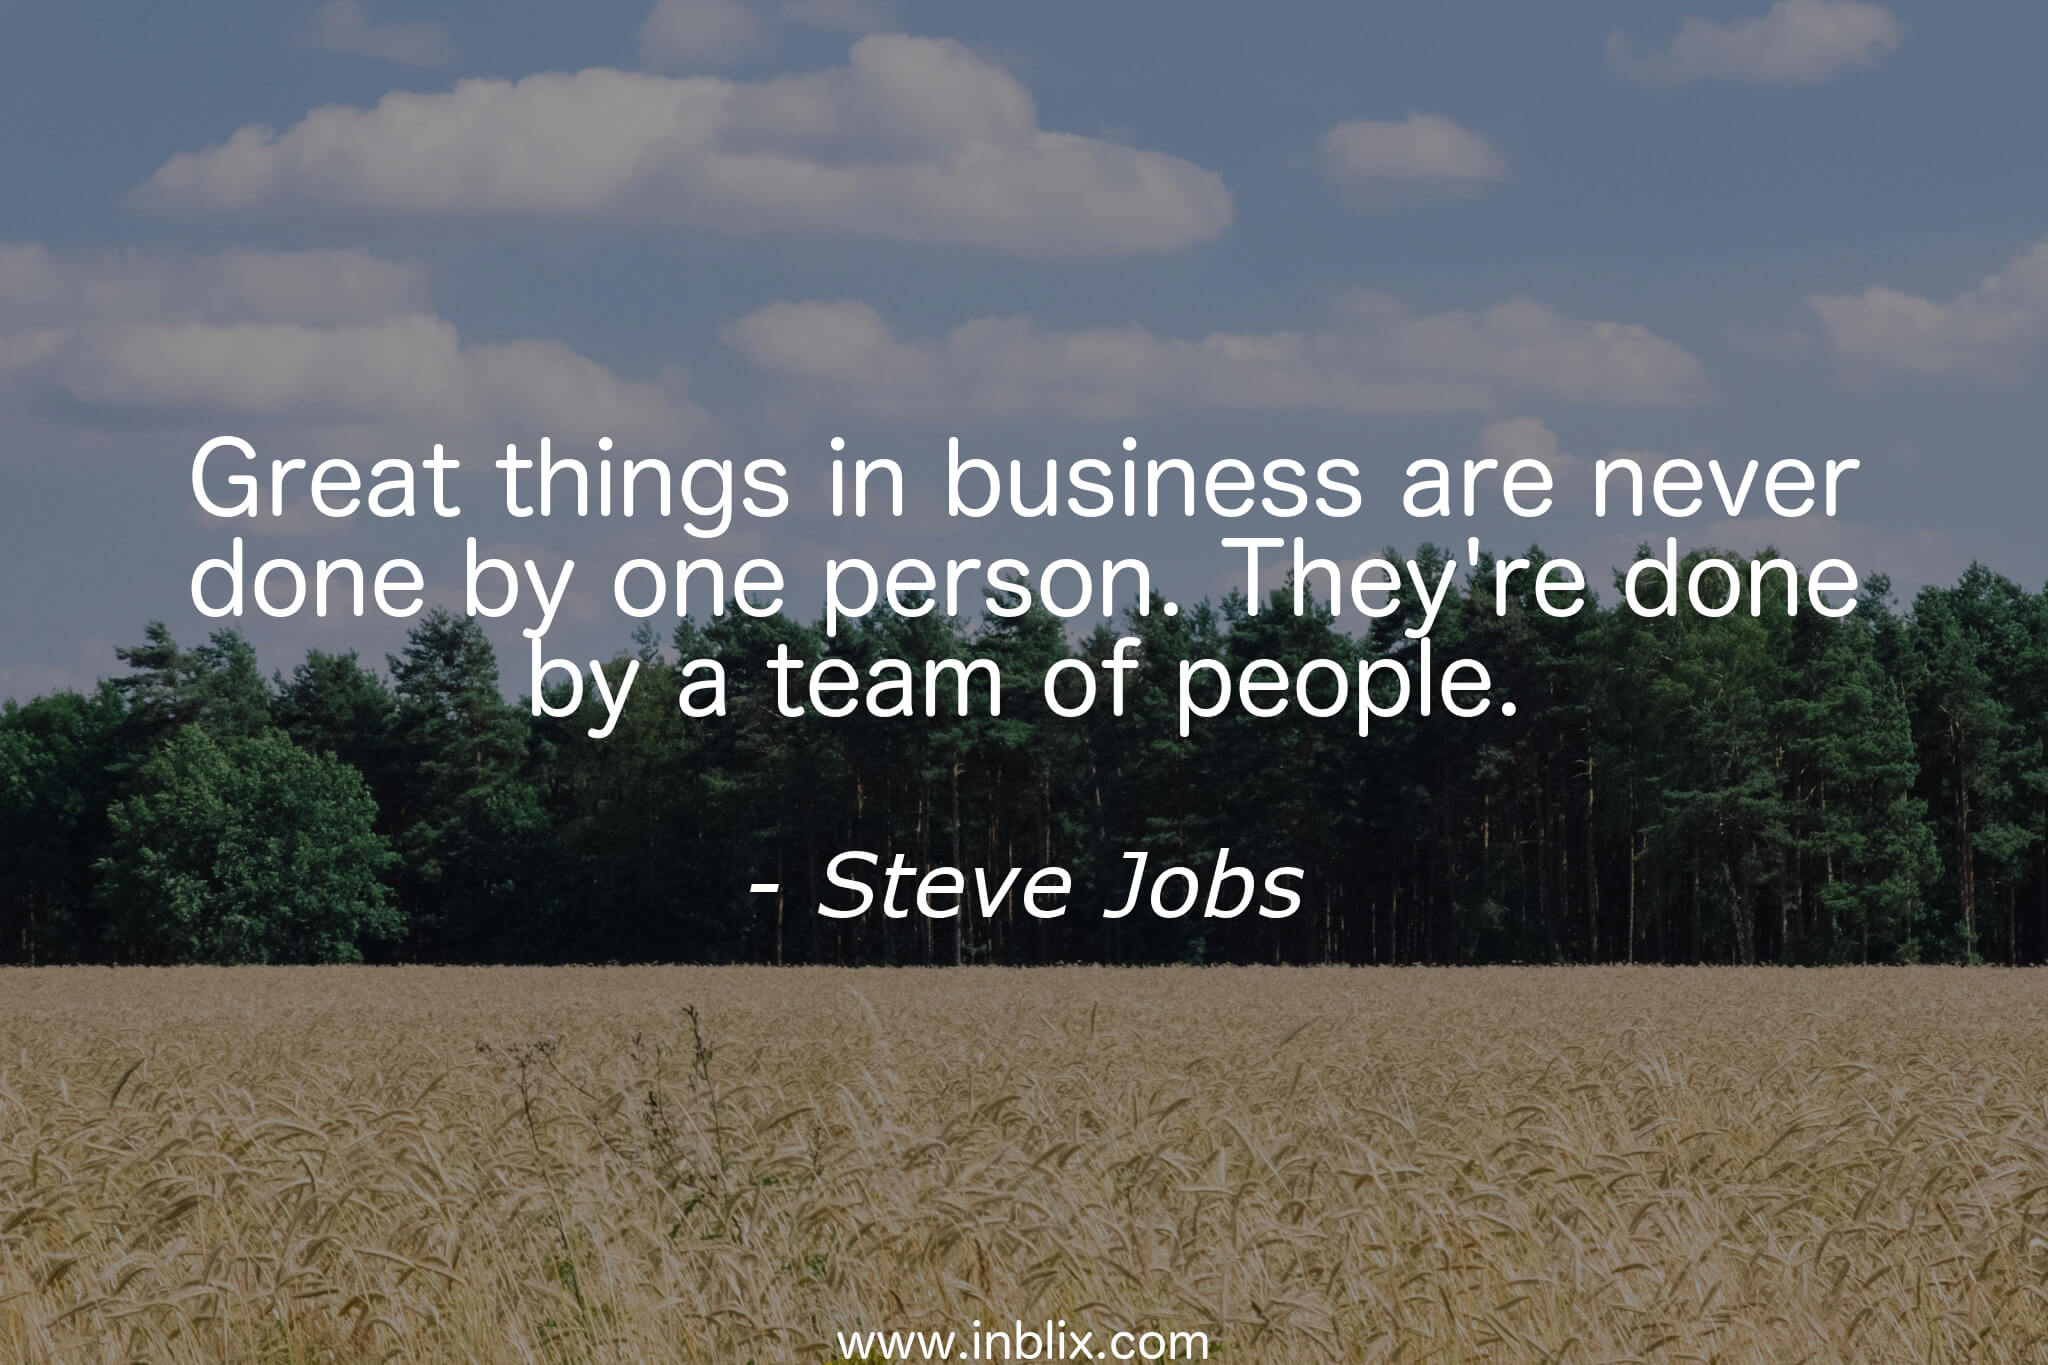 Great things in business are never done by one person. They're done by a team of people.